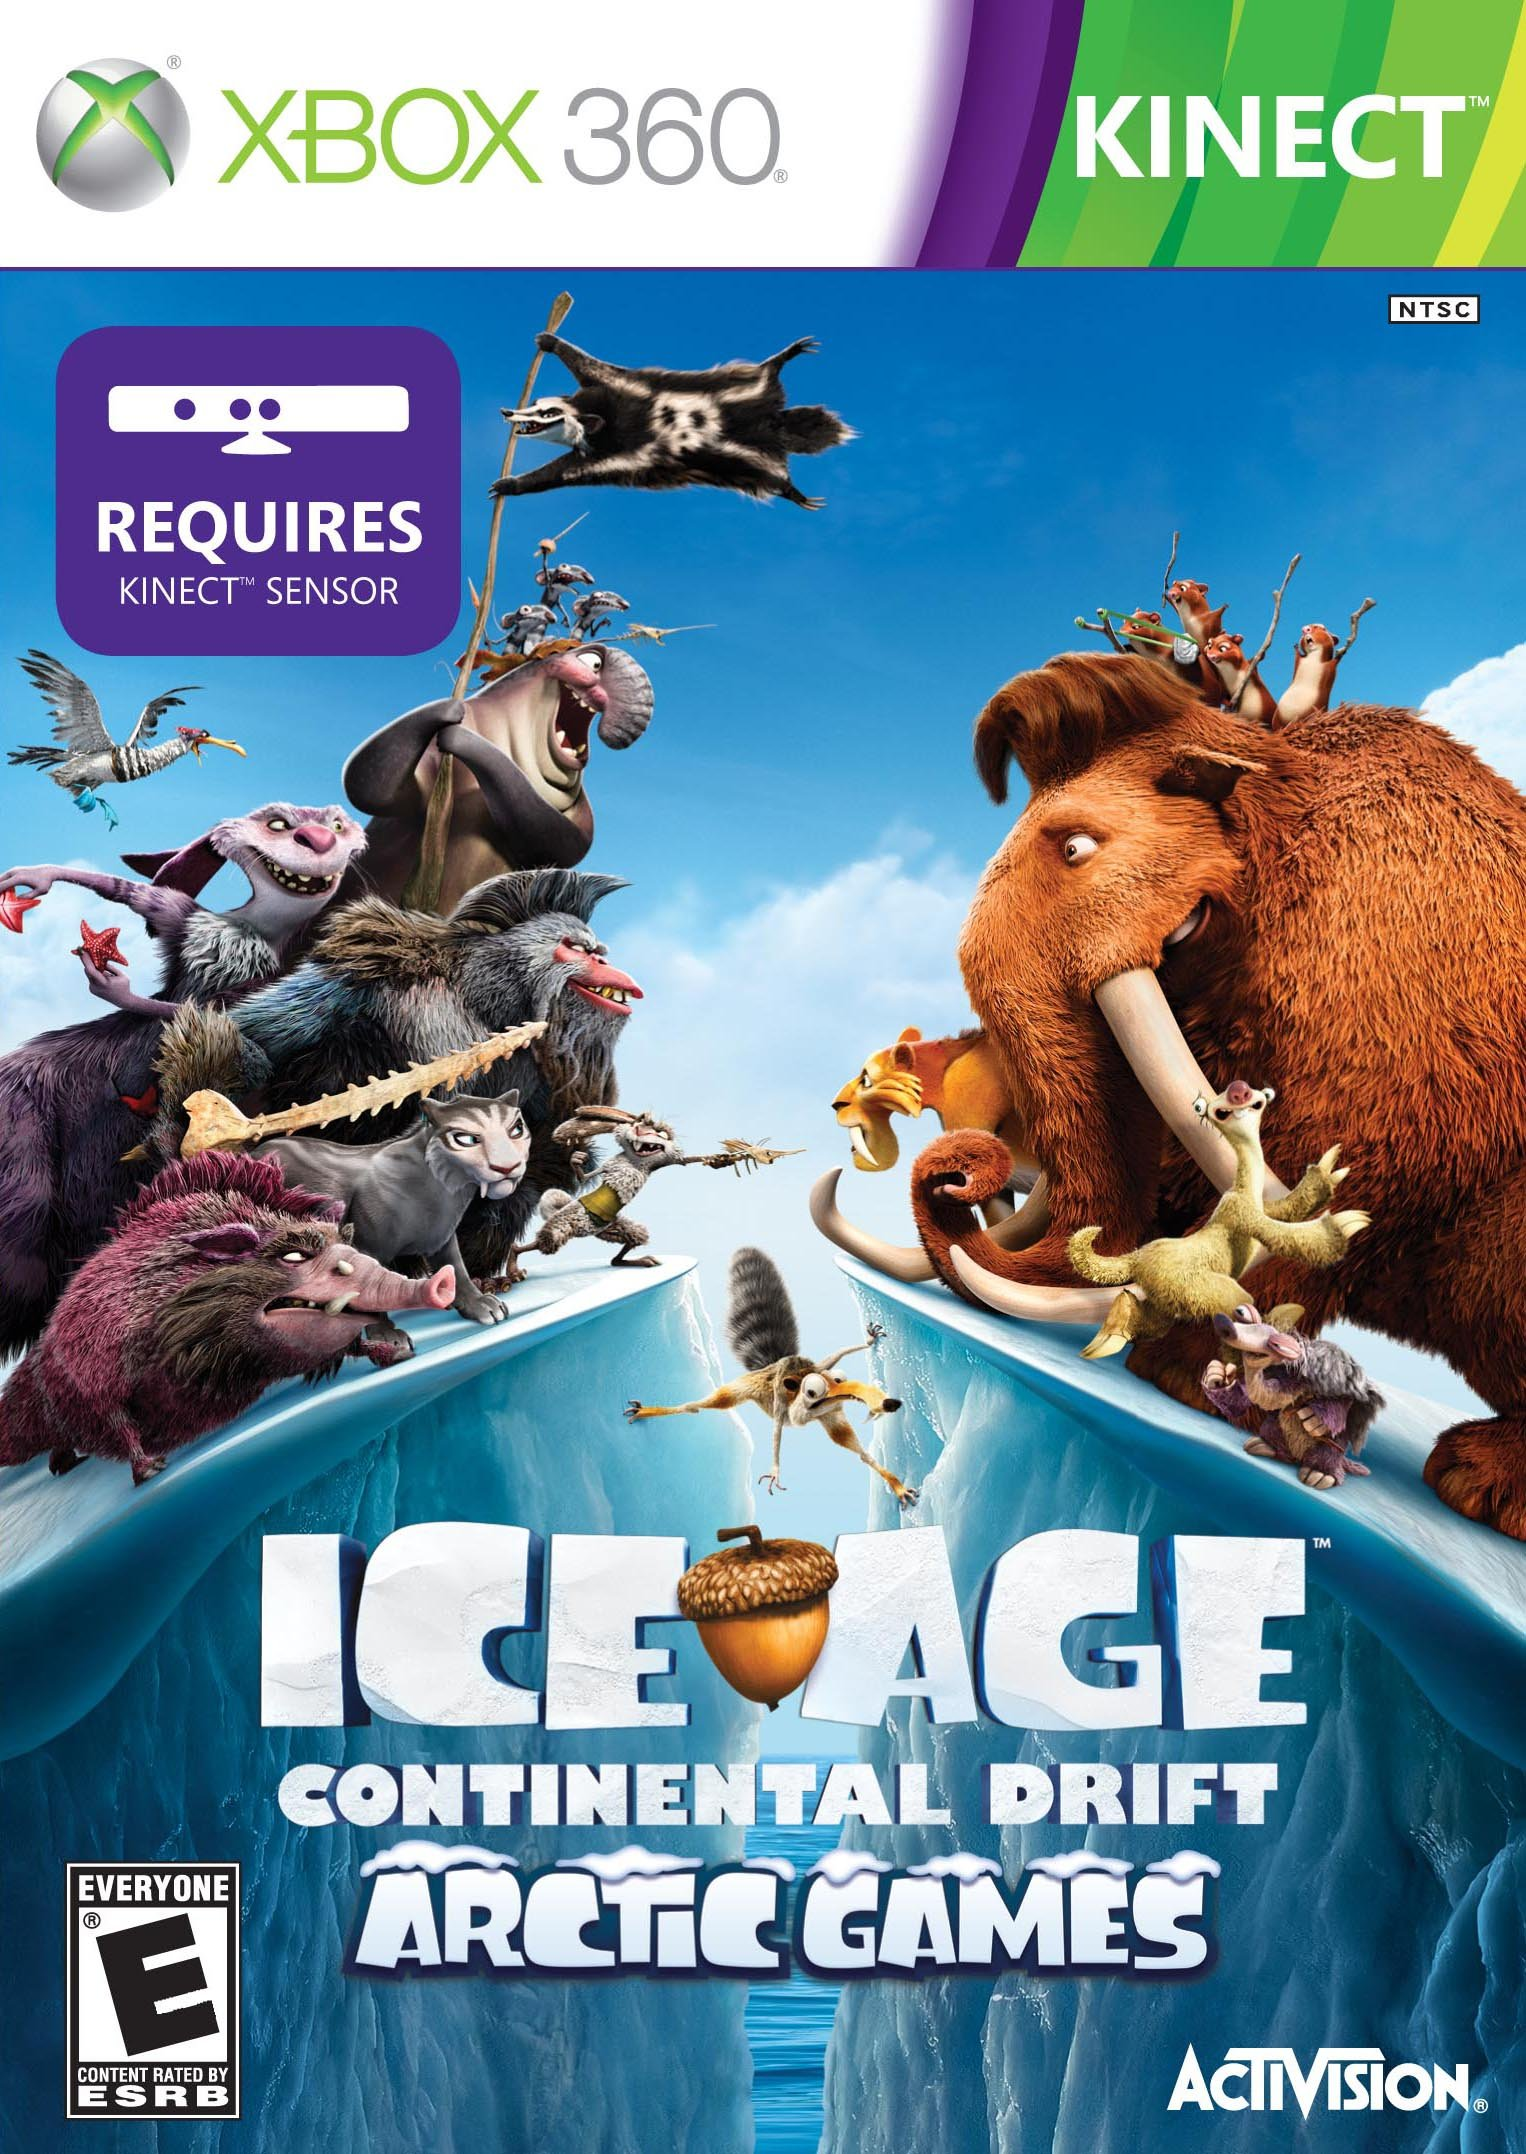 ice age: continental drift release date (xbox 360, wii, ds, 3ds)